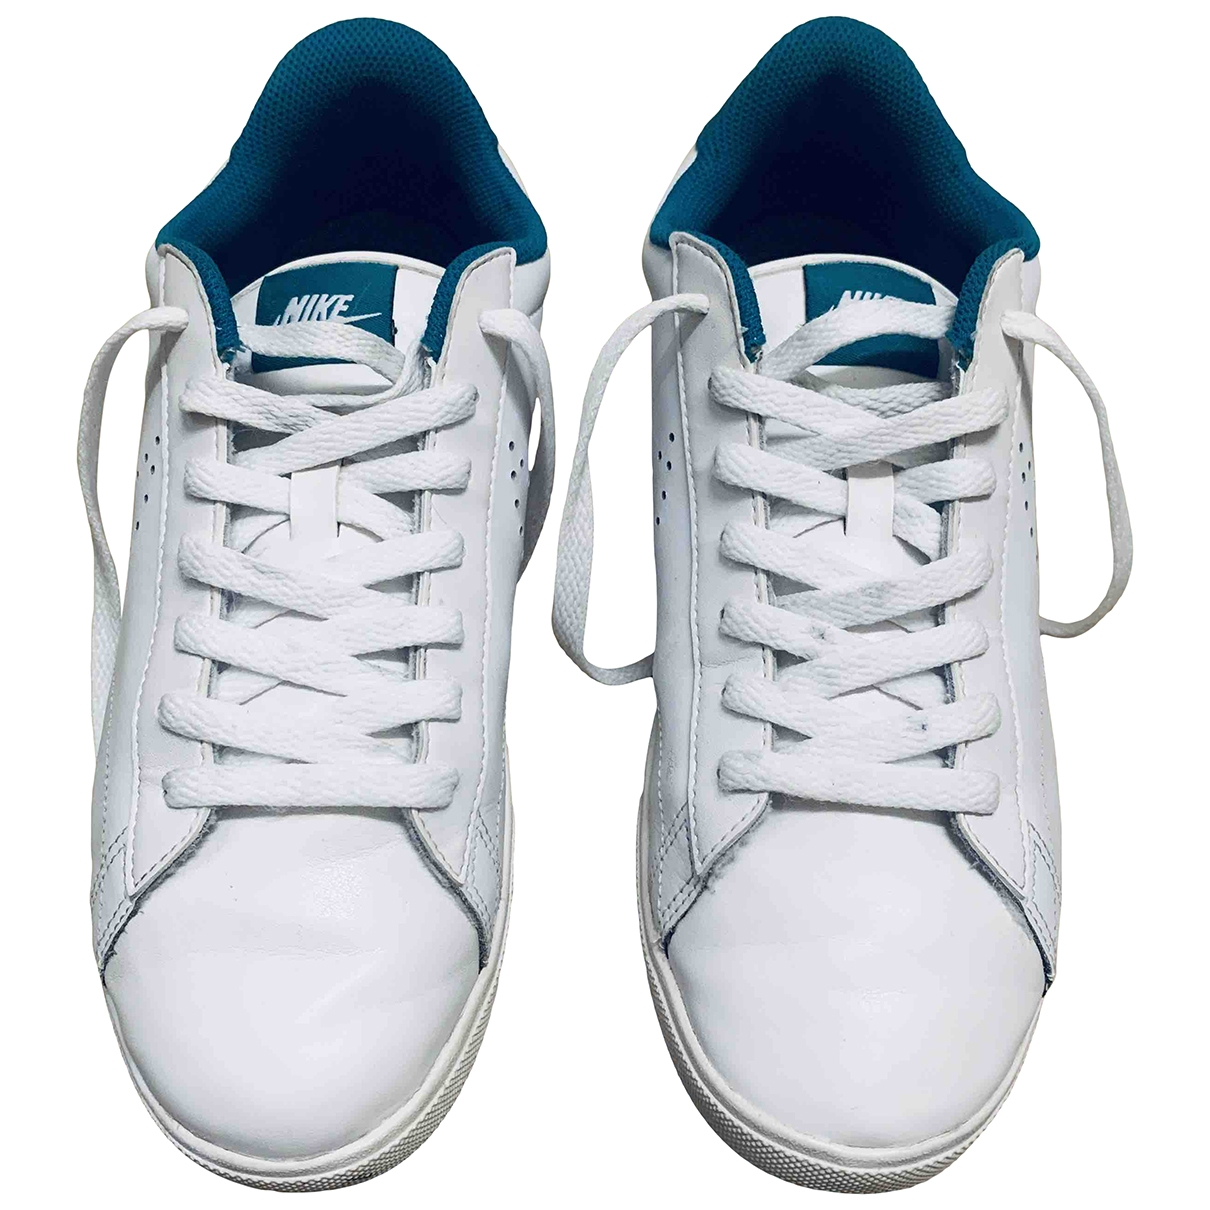 Nike \N White Patent leather Trainers for Women 40.5 EU